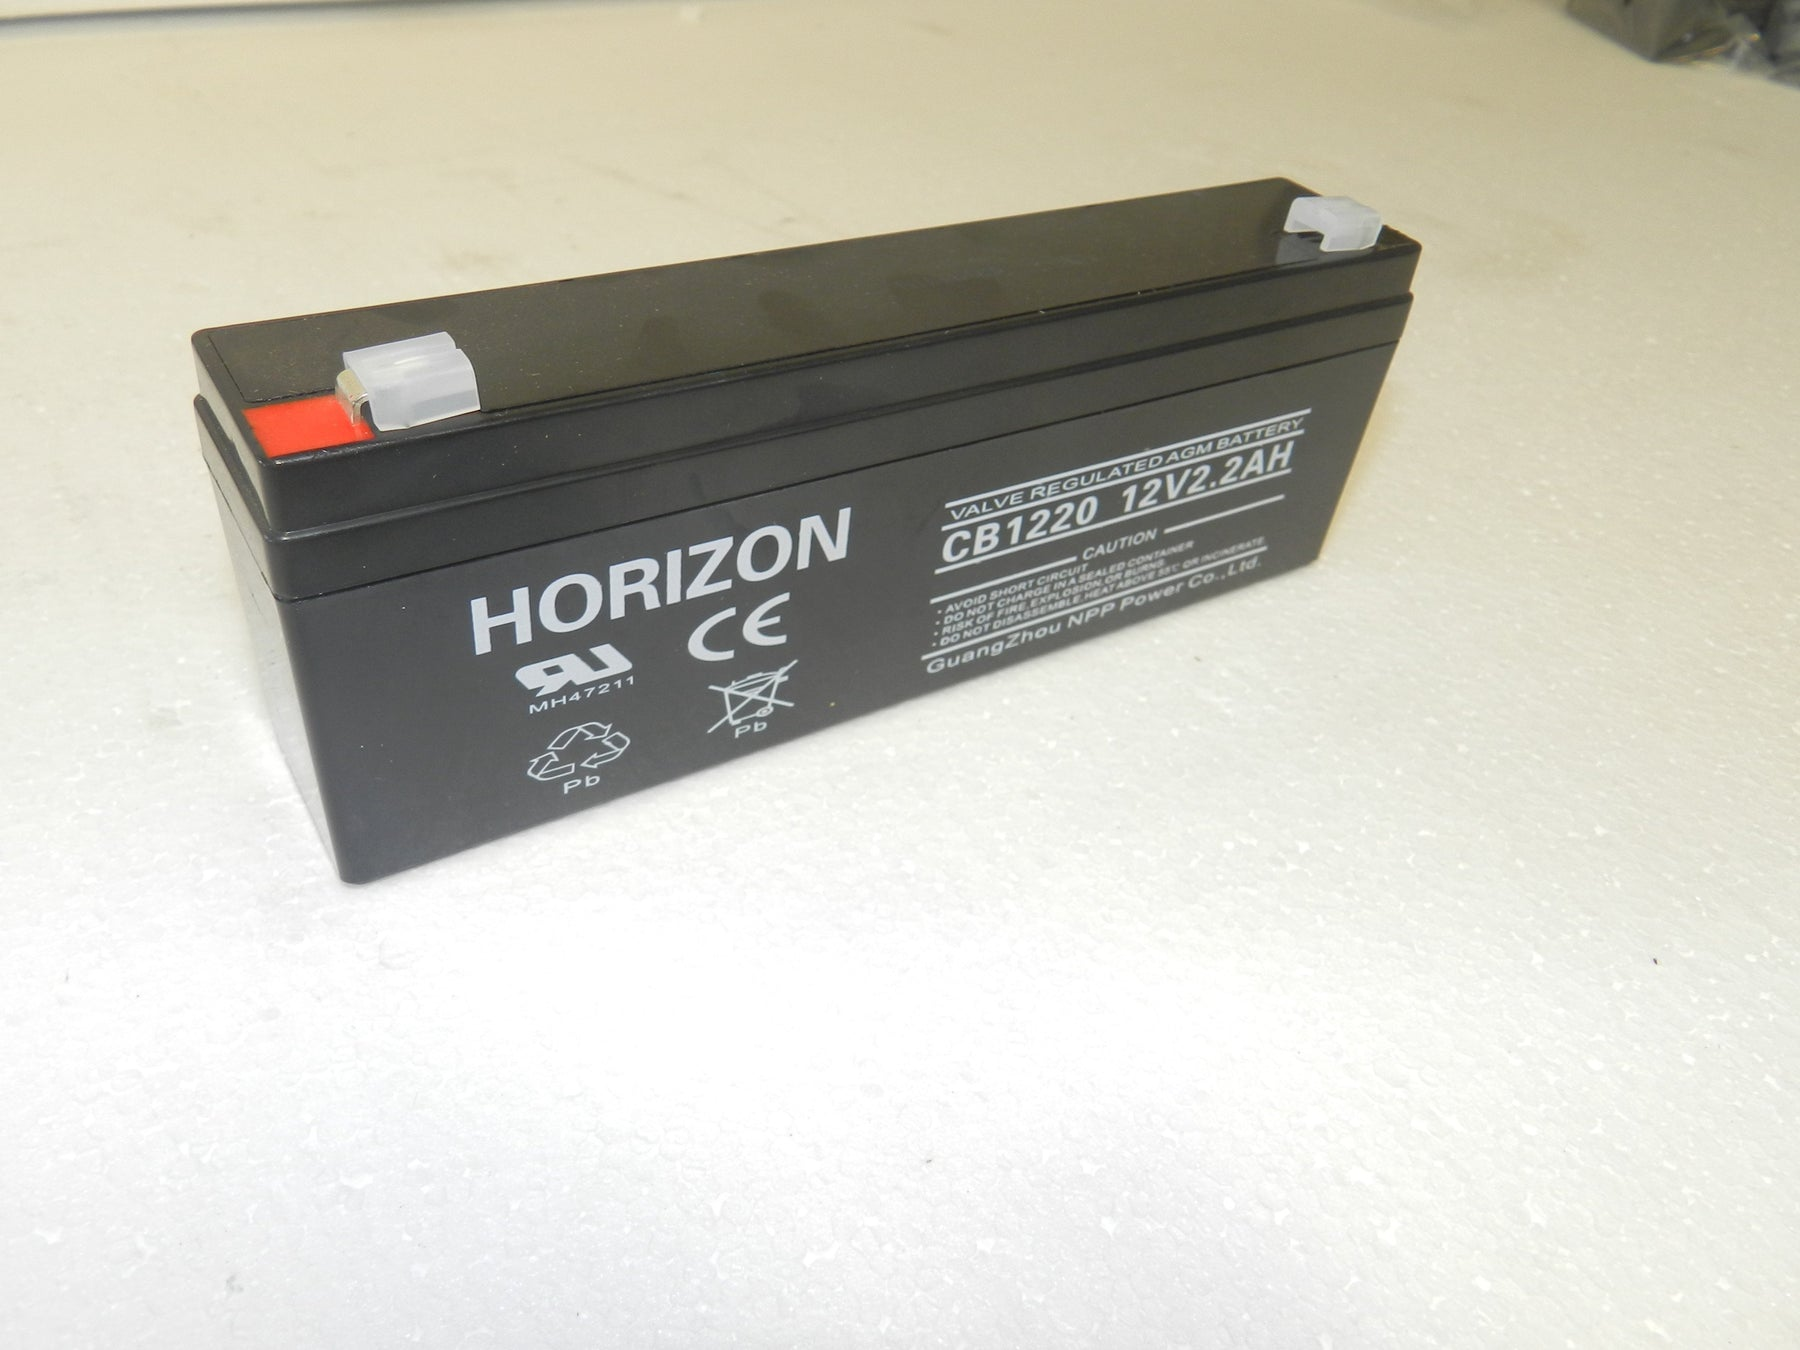 12v 2.2ah sla battery from Batteryworld.ie